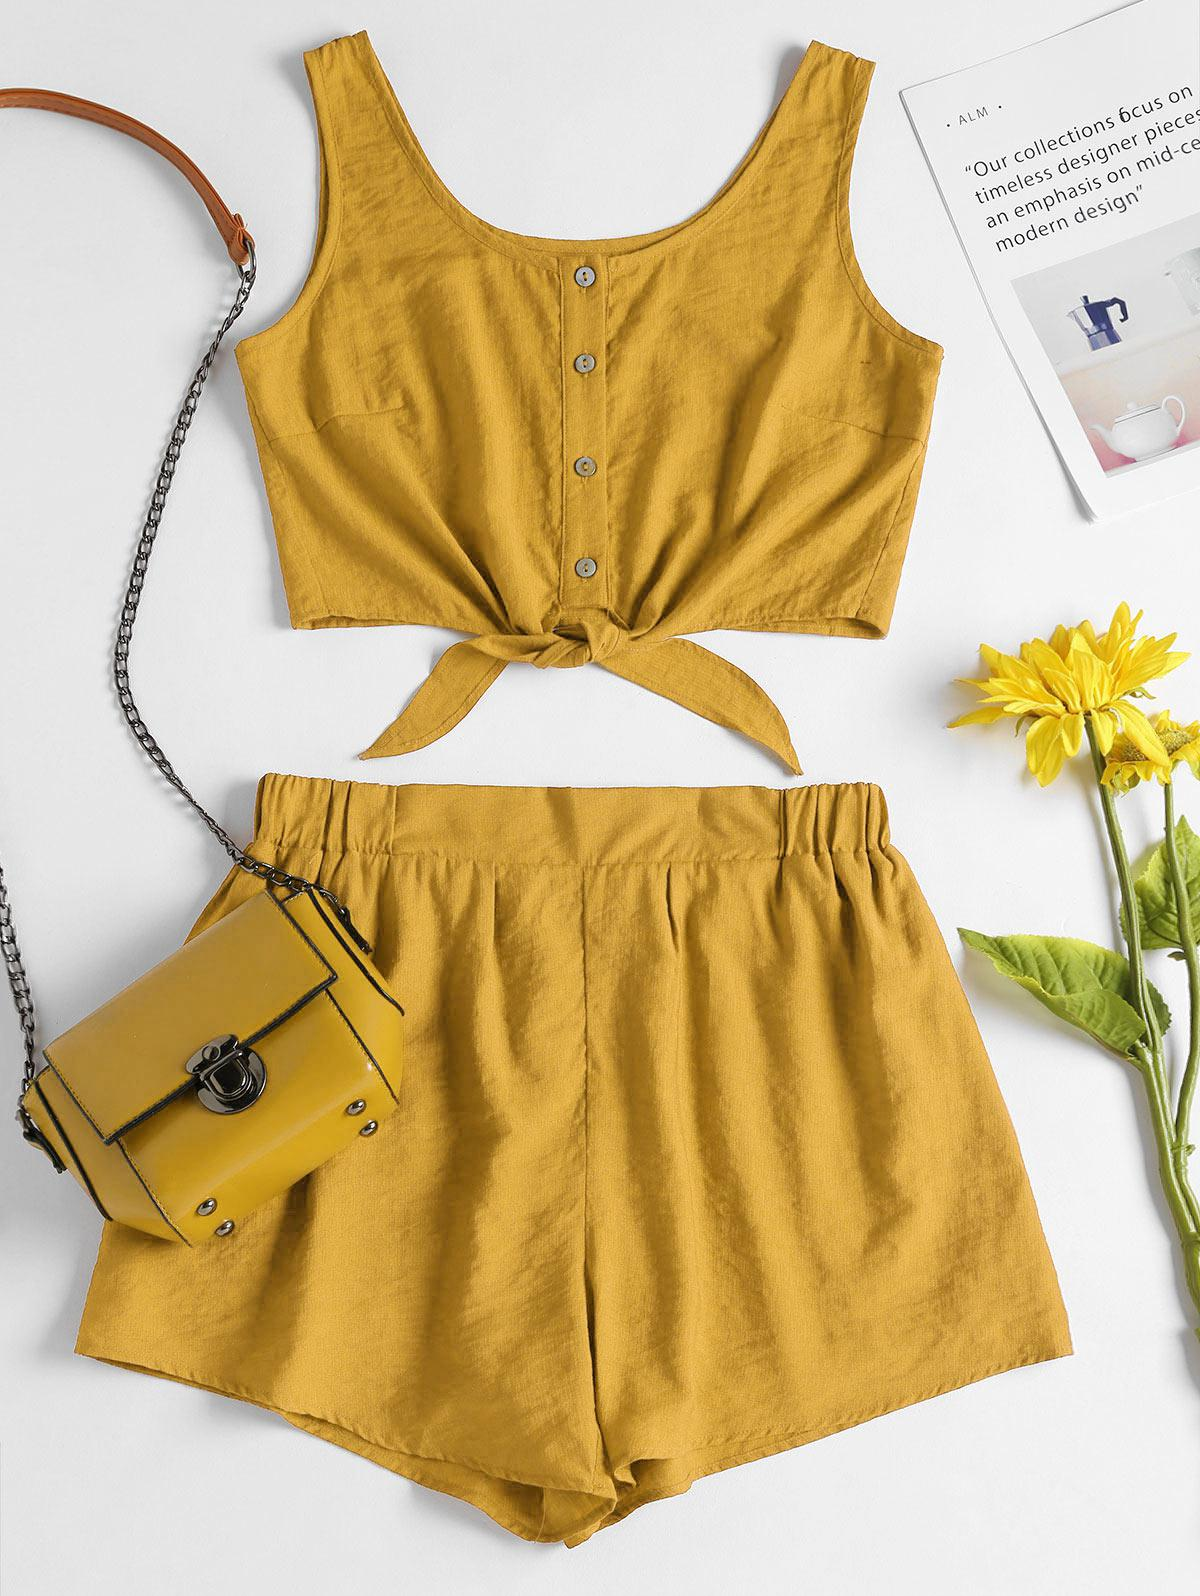 Sleeveless Button Up Crop Top and Shorts Set, Bee yellow